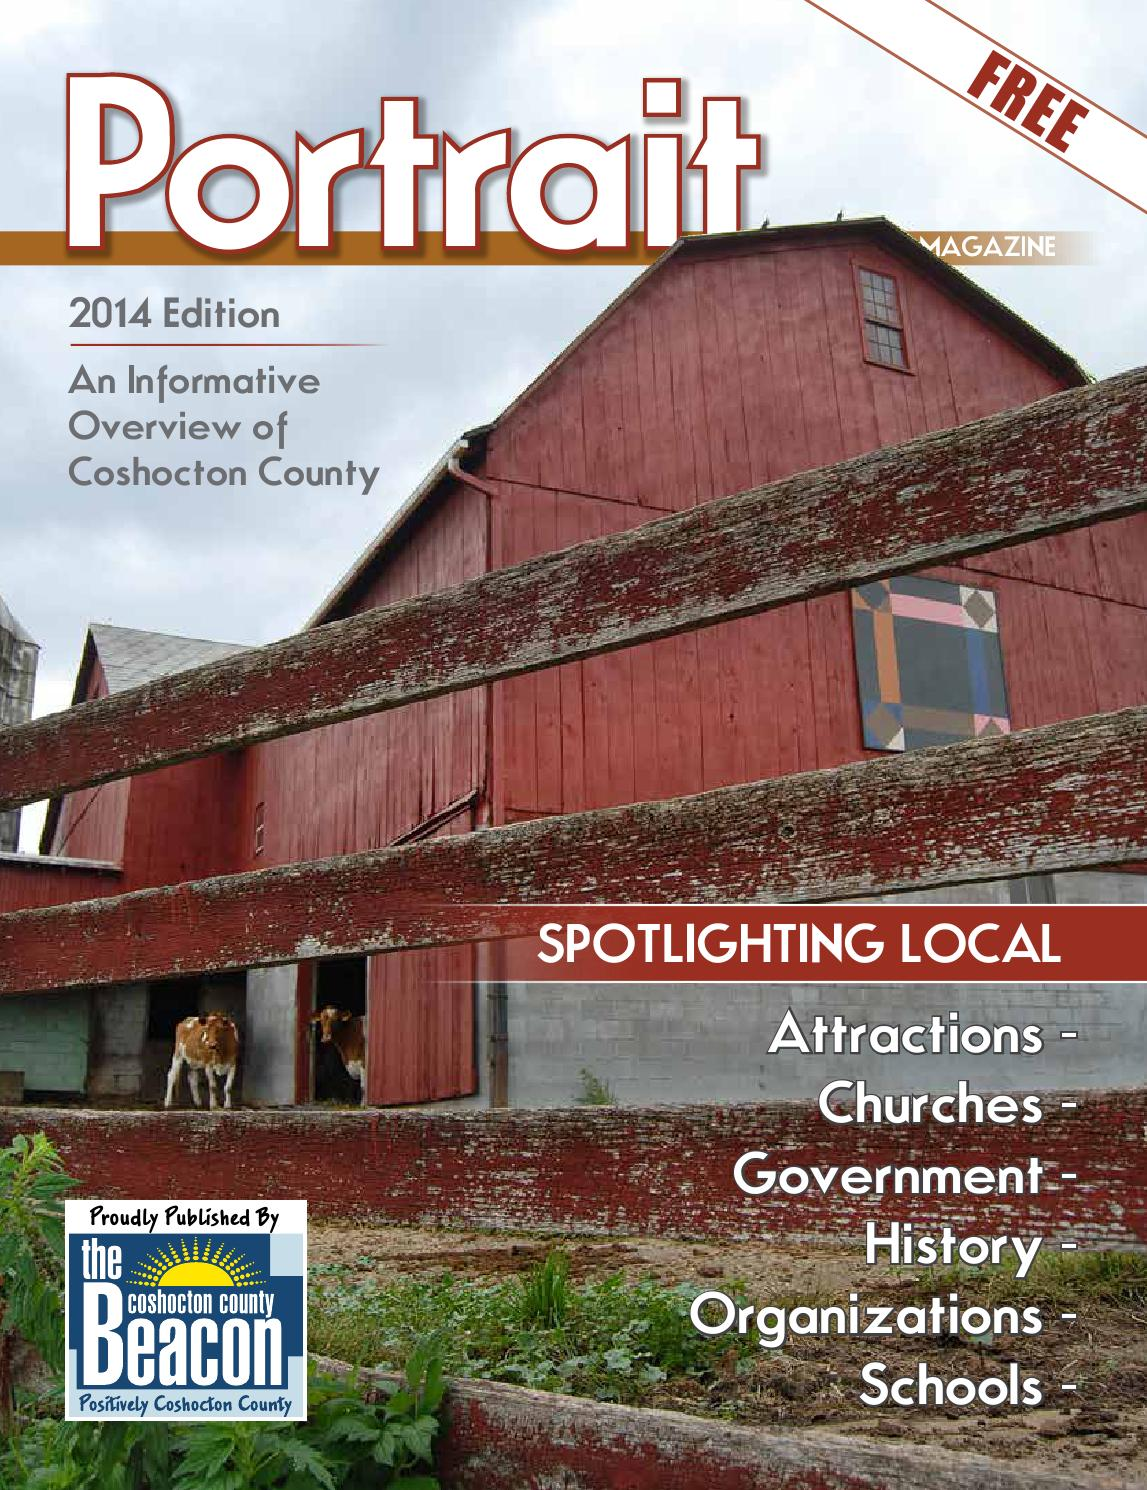 Portrait Magazine 2014 Edition By The Coshocton County Beacon